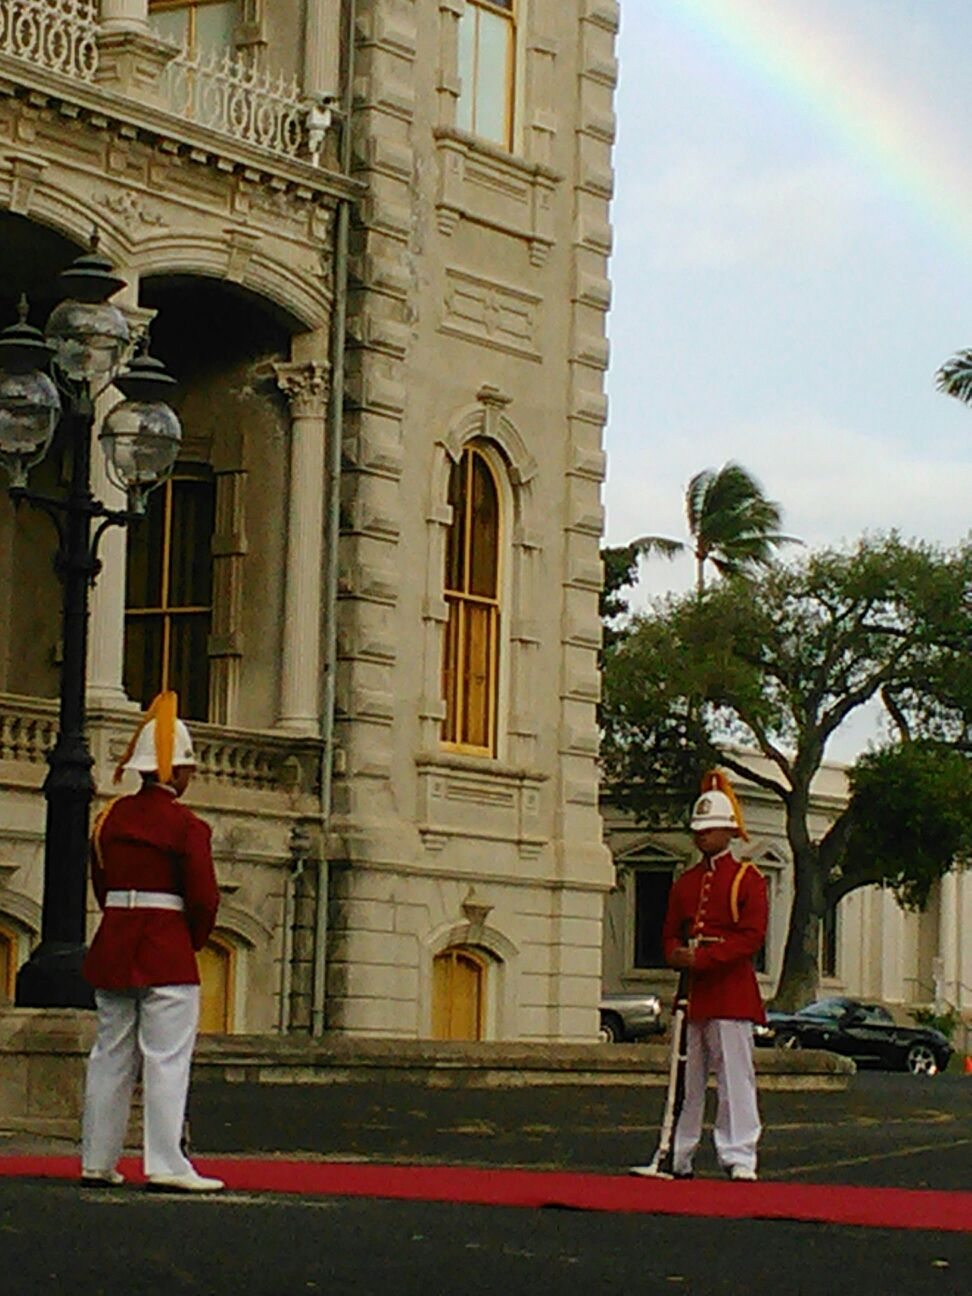 032412 Iolani Palace Sentry Duty